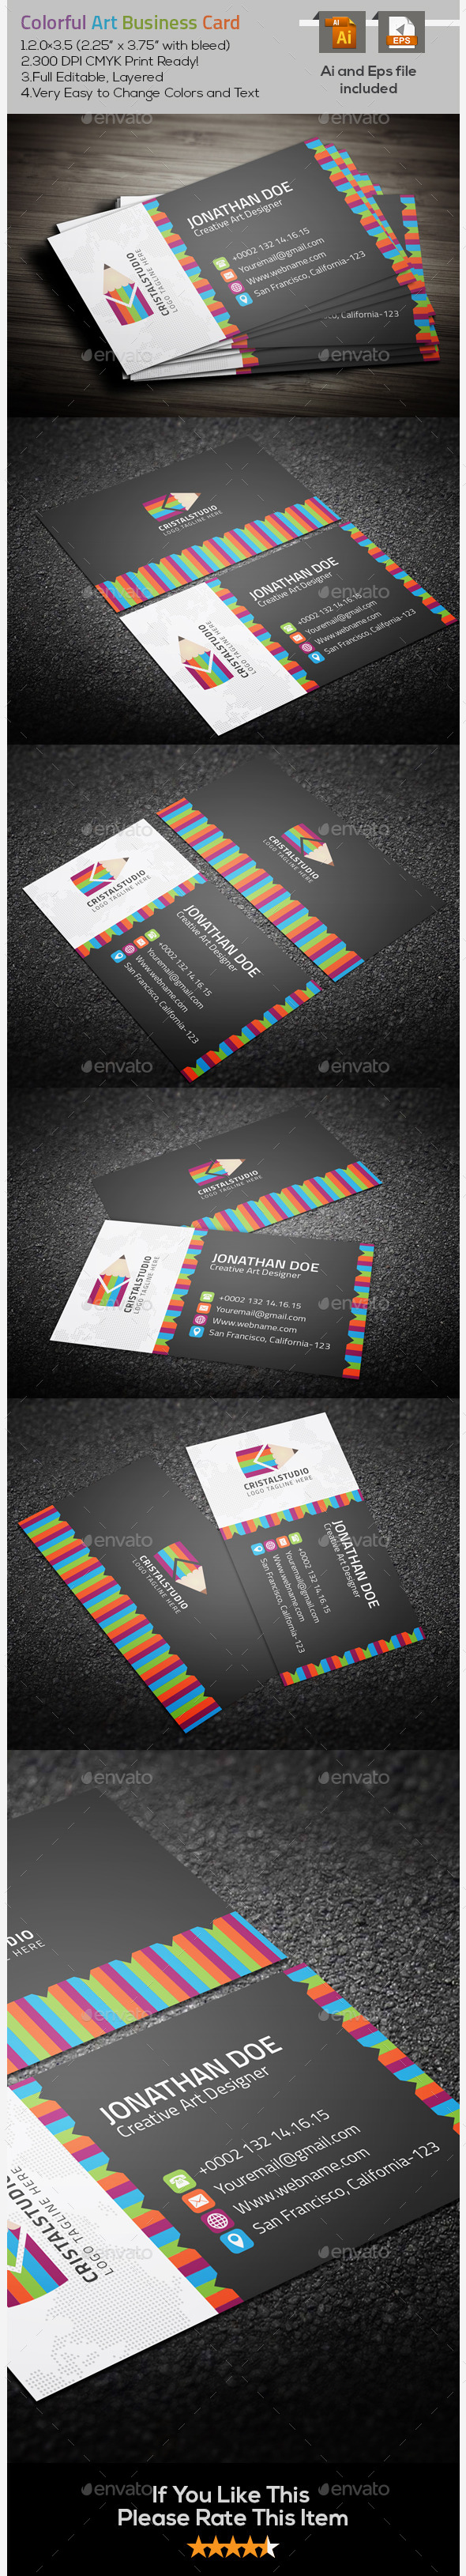 Colorful Art Business Card - Creative Business Cards